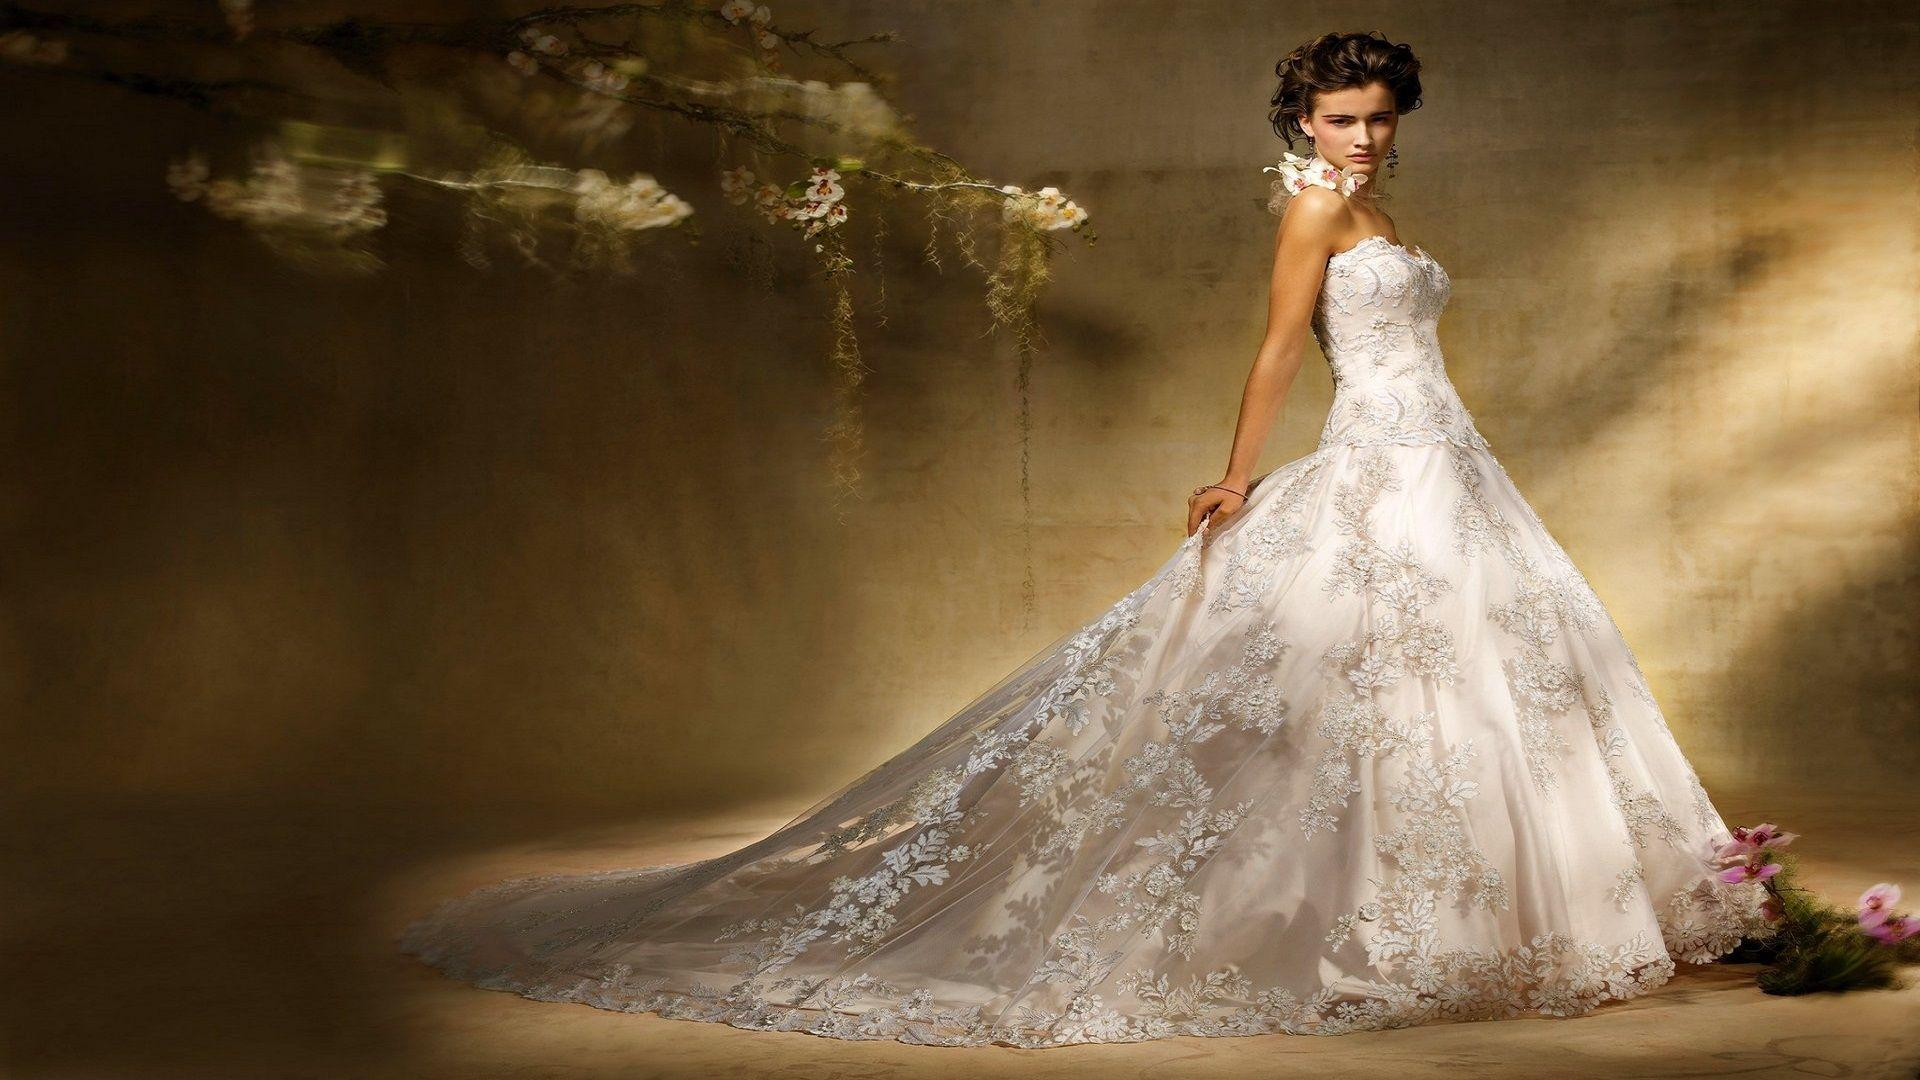 Gown Wallpapers Top Free Gown Backgrounds Wallpaperaccess